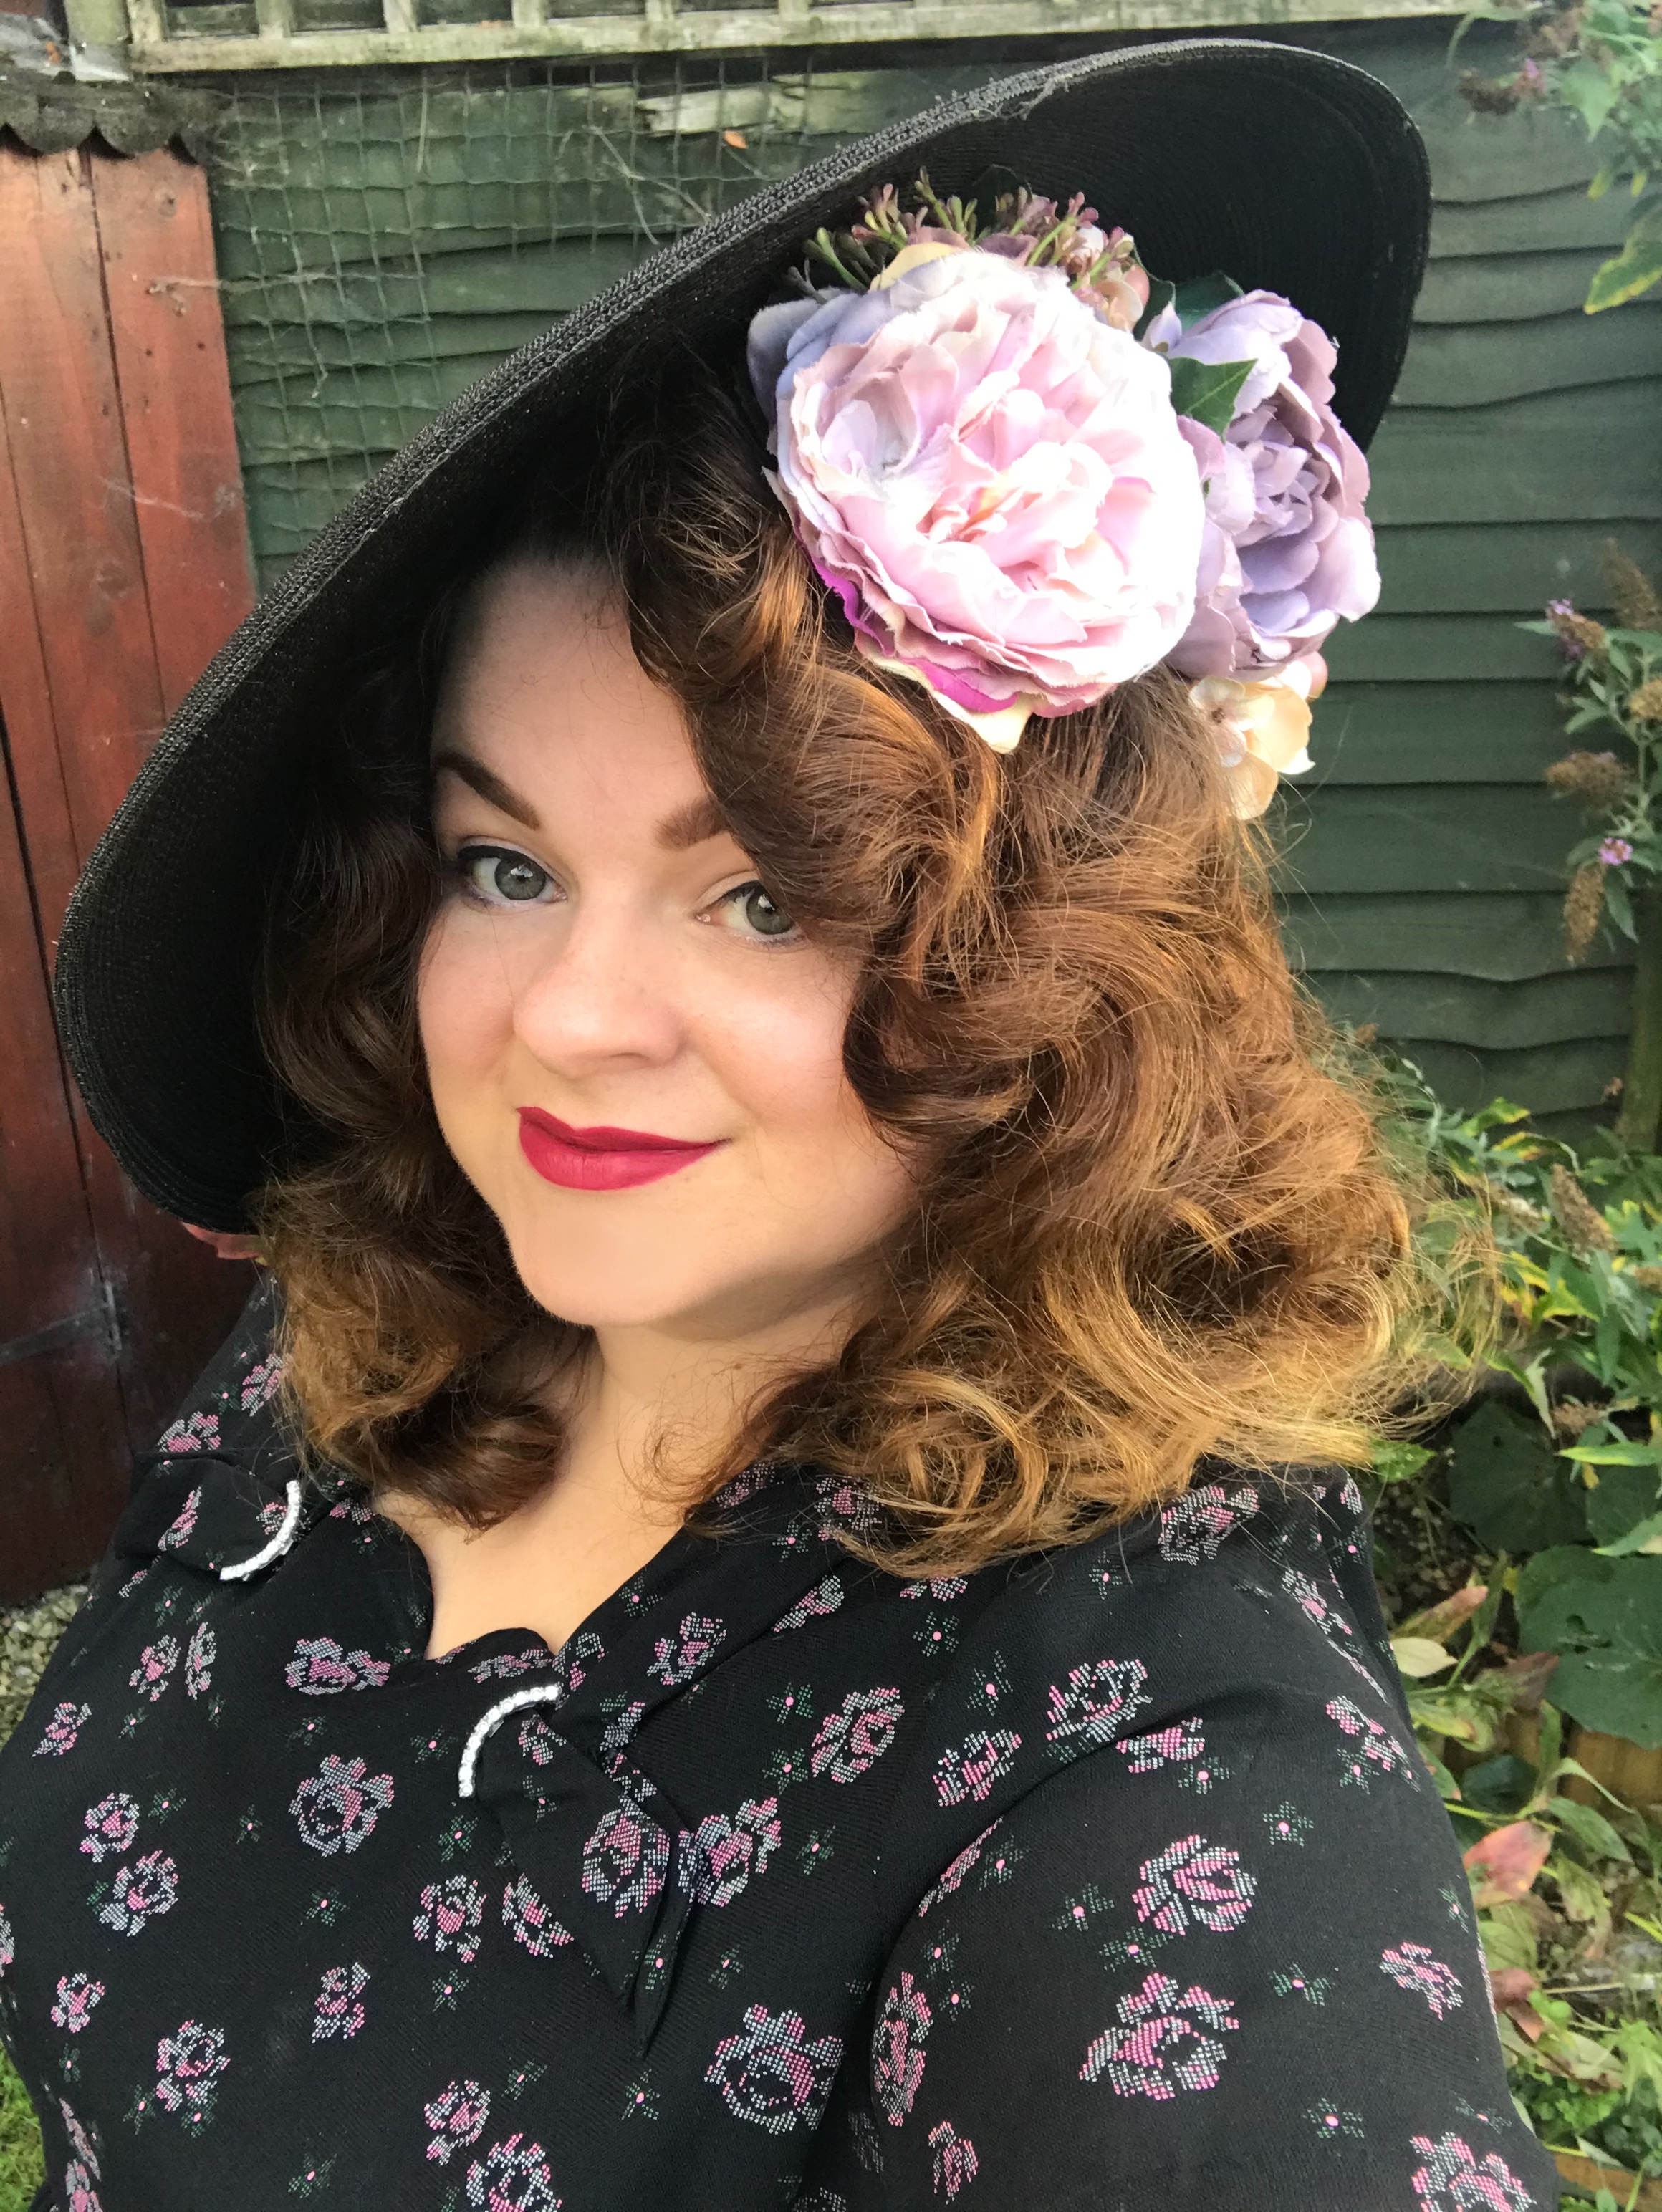 hair flower and hat